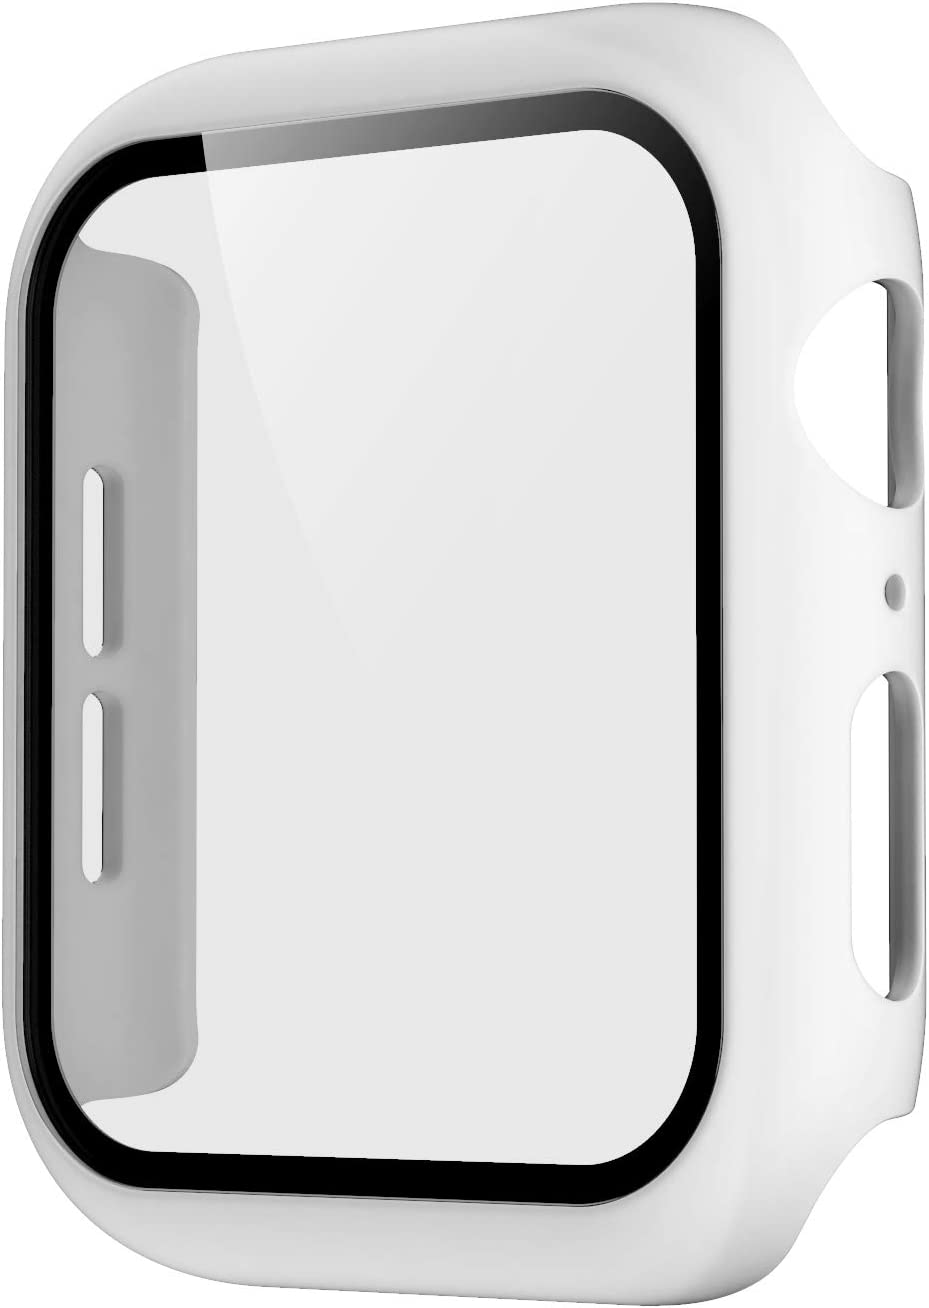 Pokanic Compatible with Apple Watch SE 6 5 4 3 2 1 Series iWatch 9H Tempered Glass Case Full Body Screen Protector Cover Wireless Charge Light Weight Scratch Resistant Proof (White, 40mm)